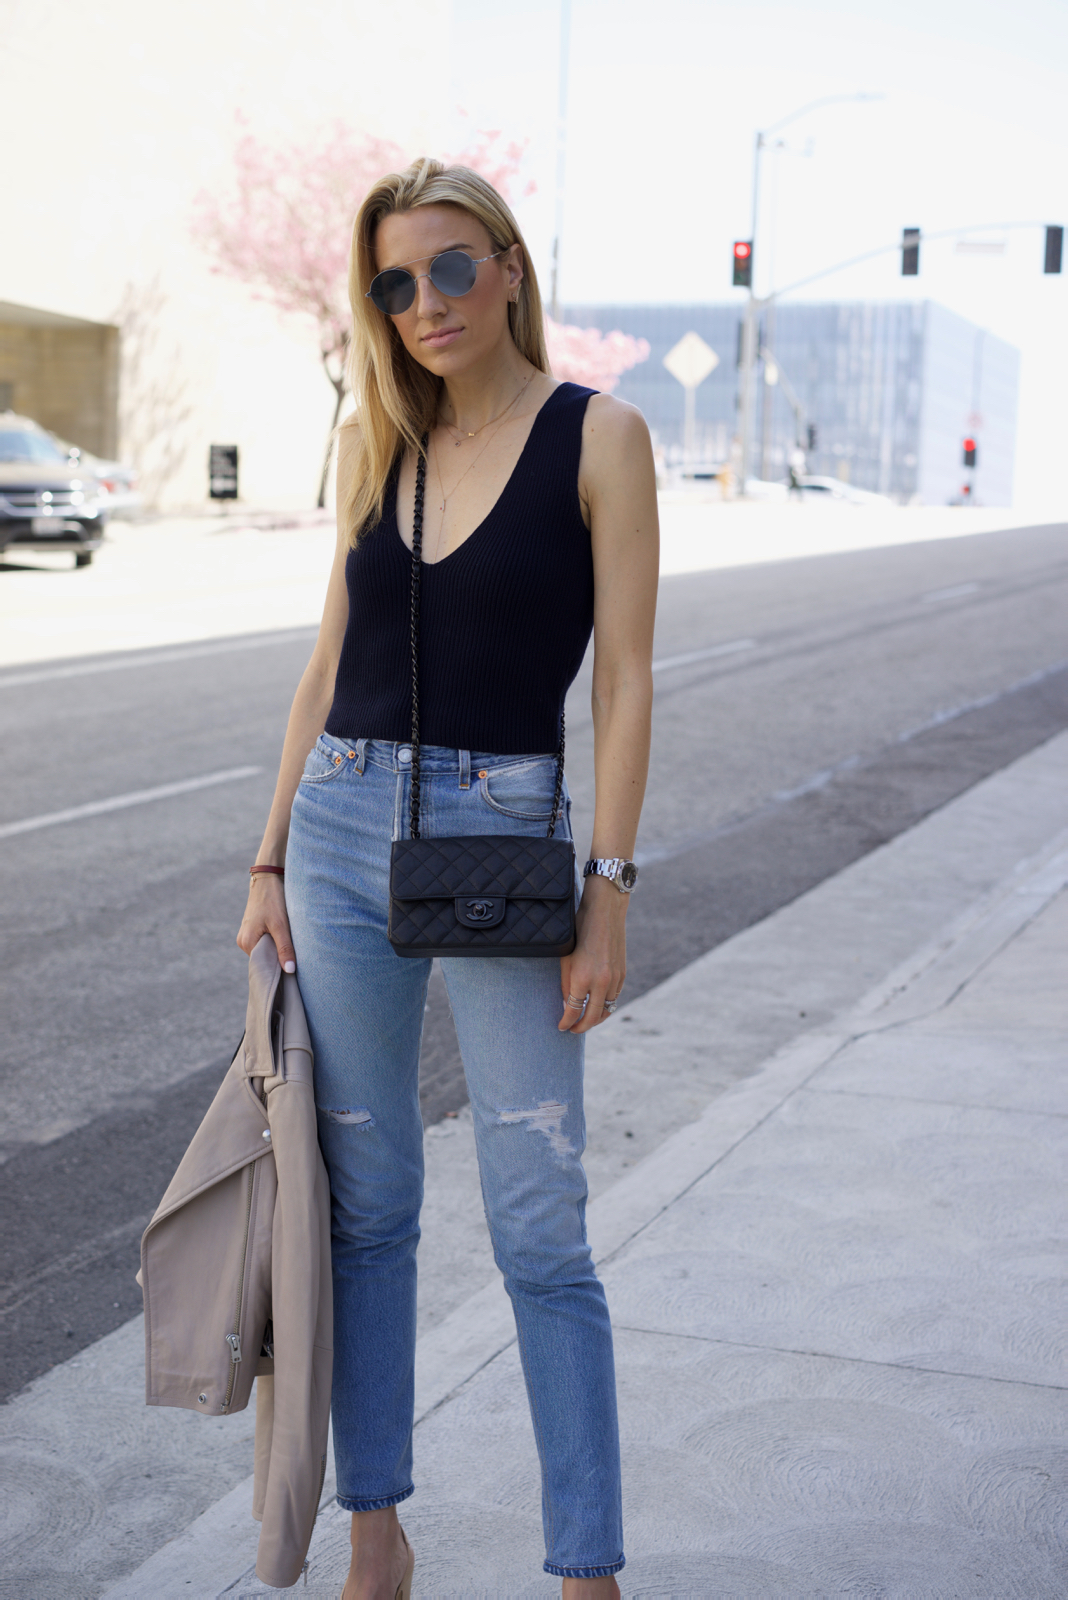 Khaite top, Levi's, Chanel bag, Chanel Shoes, Spring Outfit